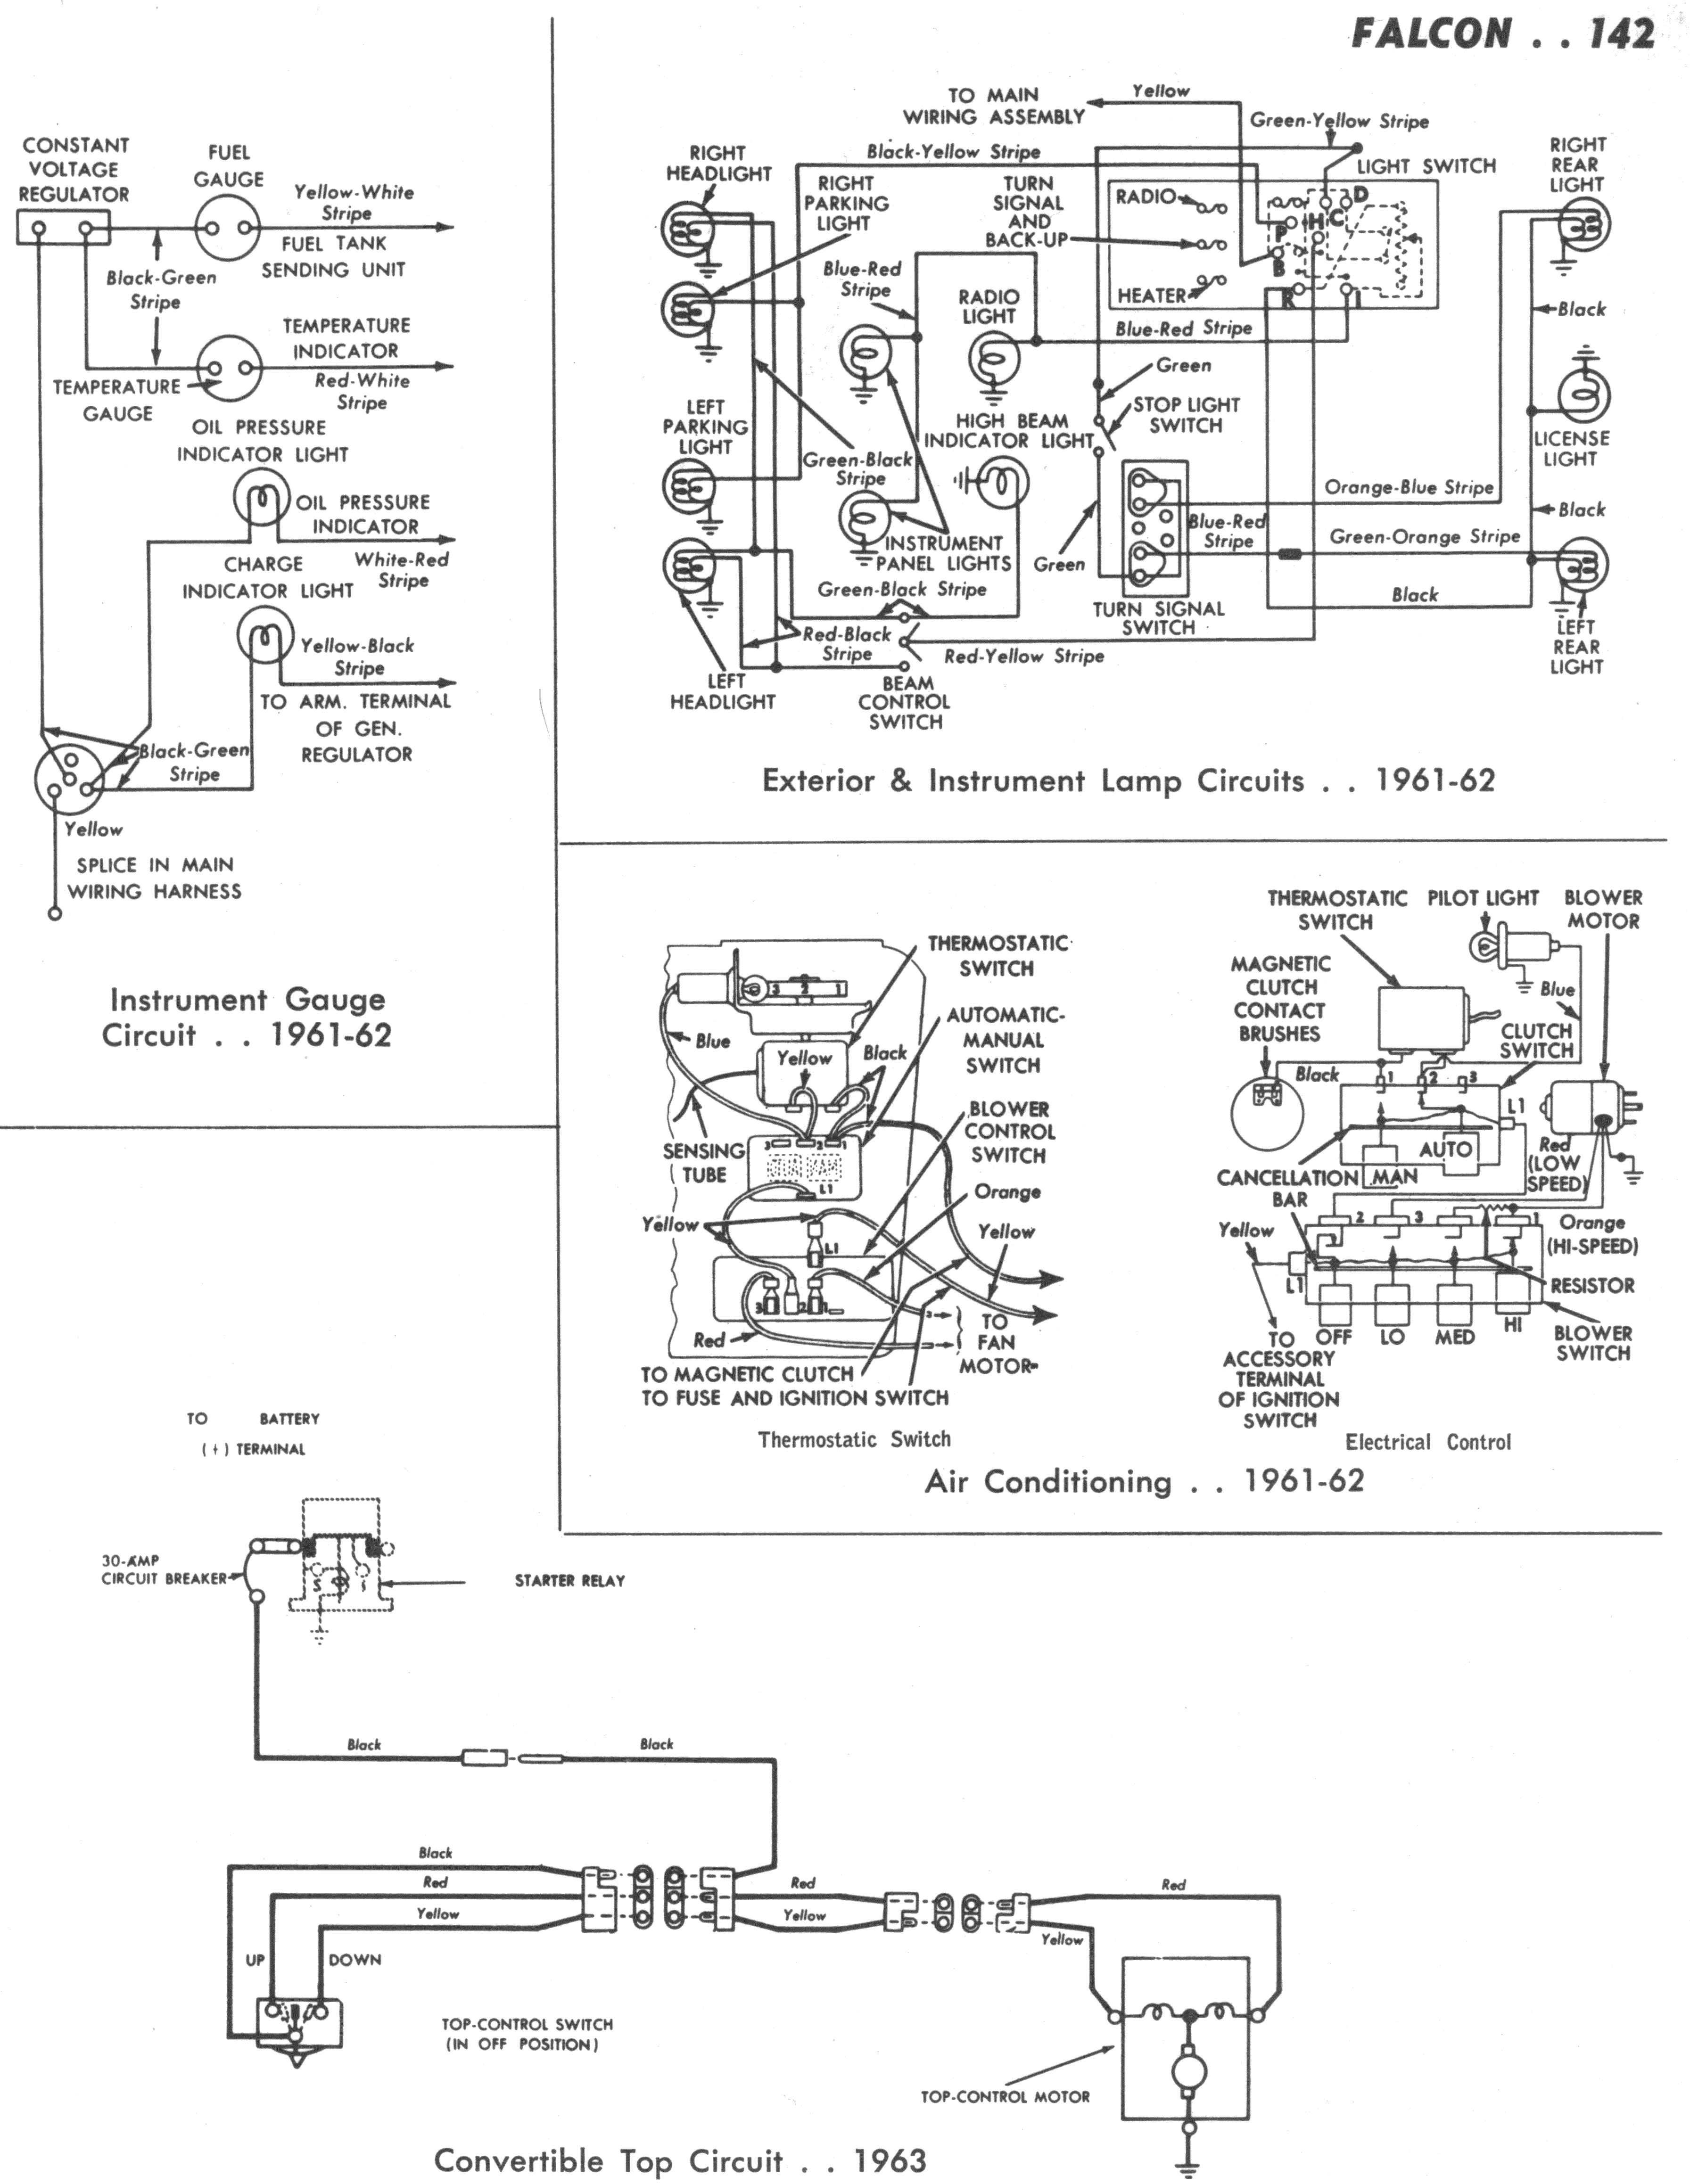 1965 falcon wiring diagram